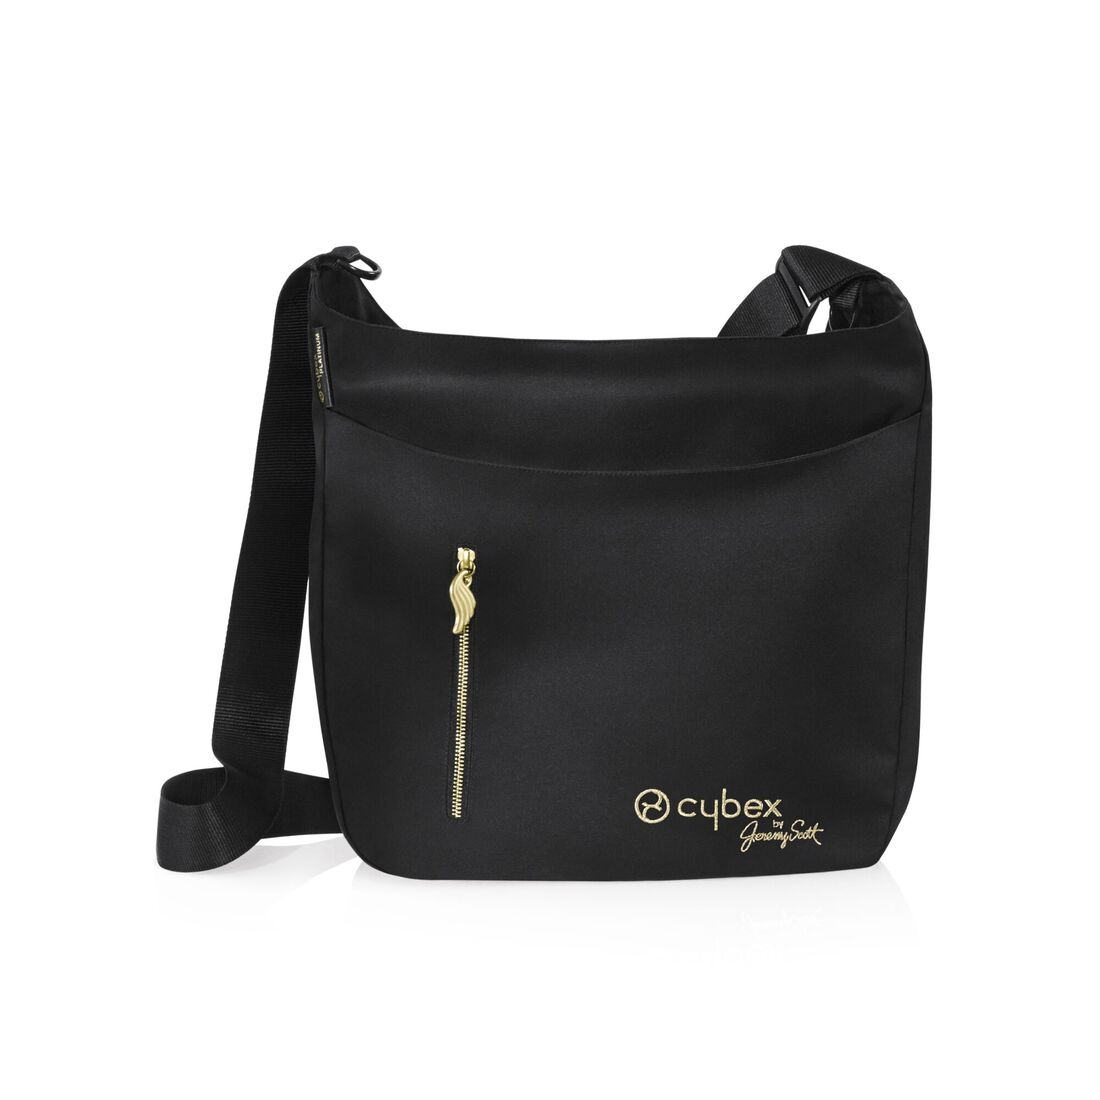 CYBEX Changing Bag Jeremy Scott - Wings in Wings large image number 1